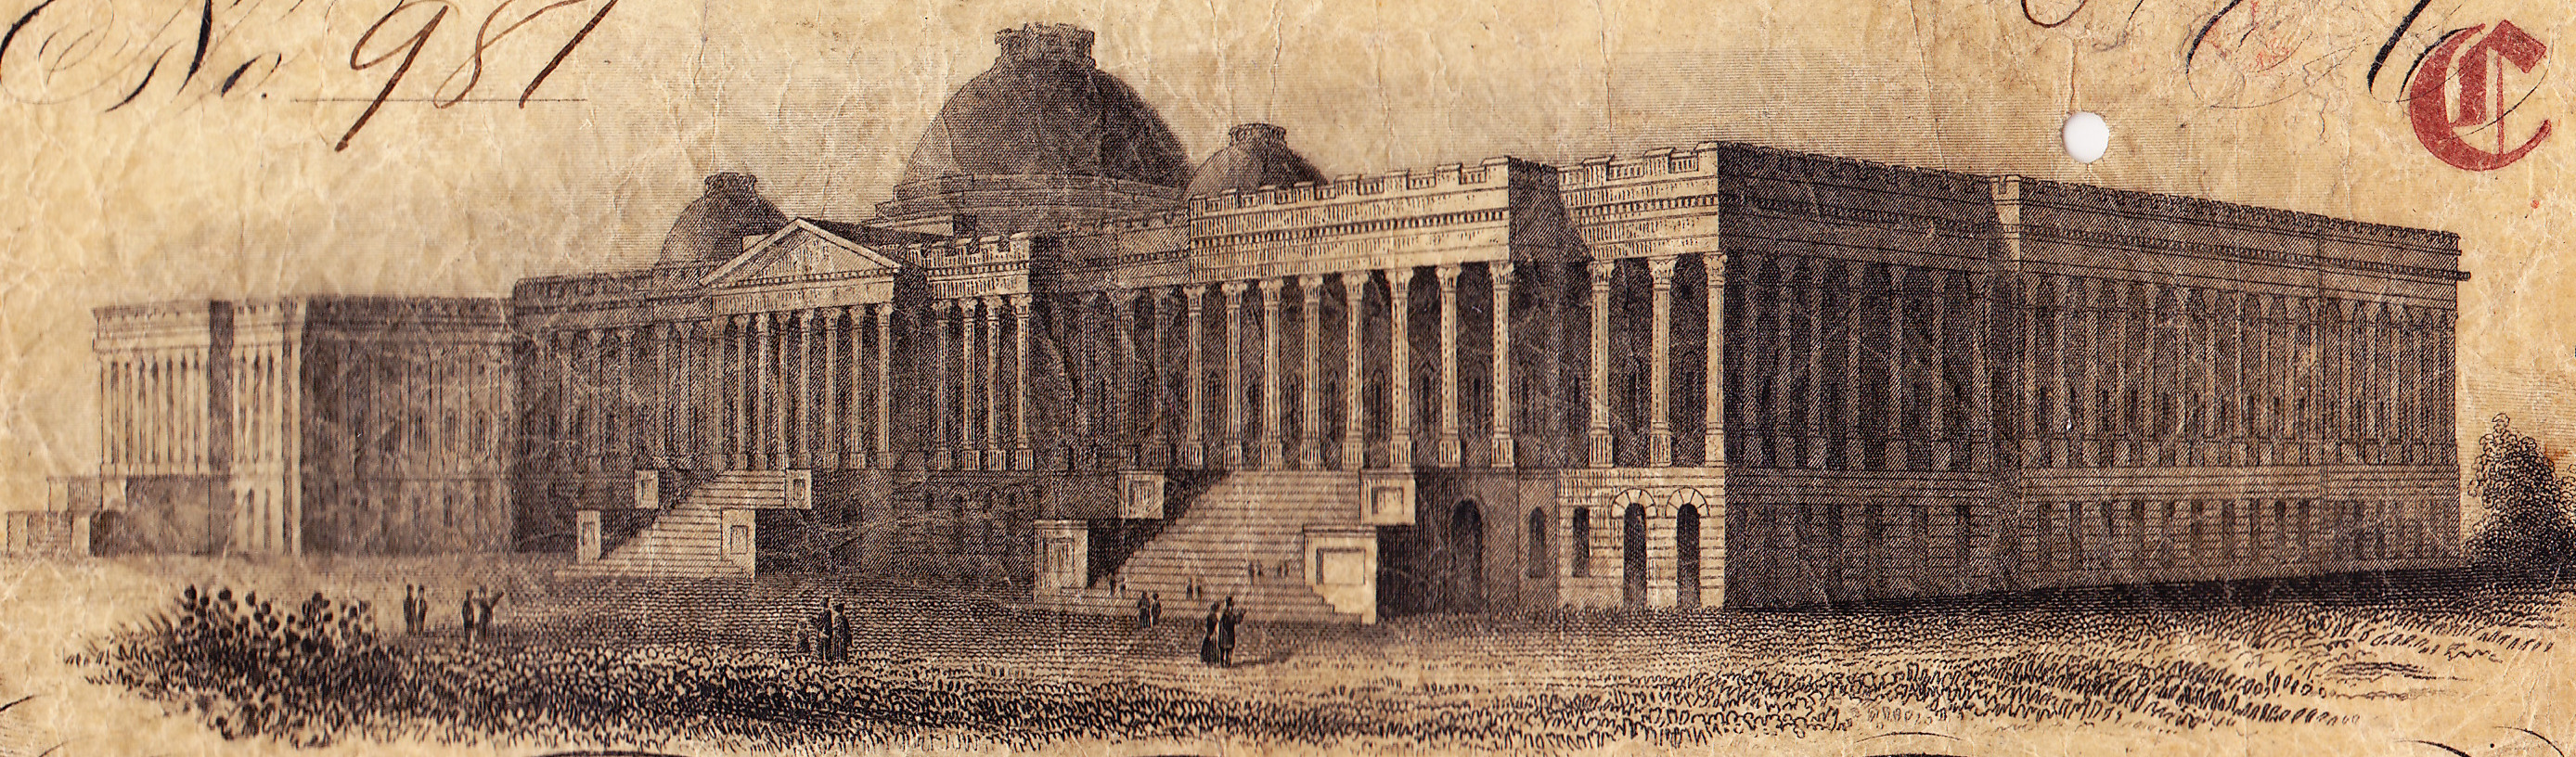 An early depiction of the Capitol in Washington.